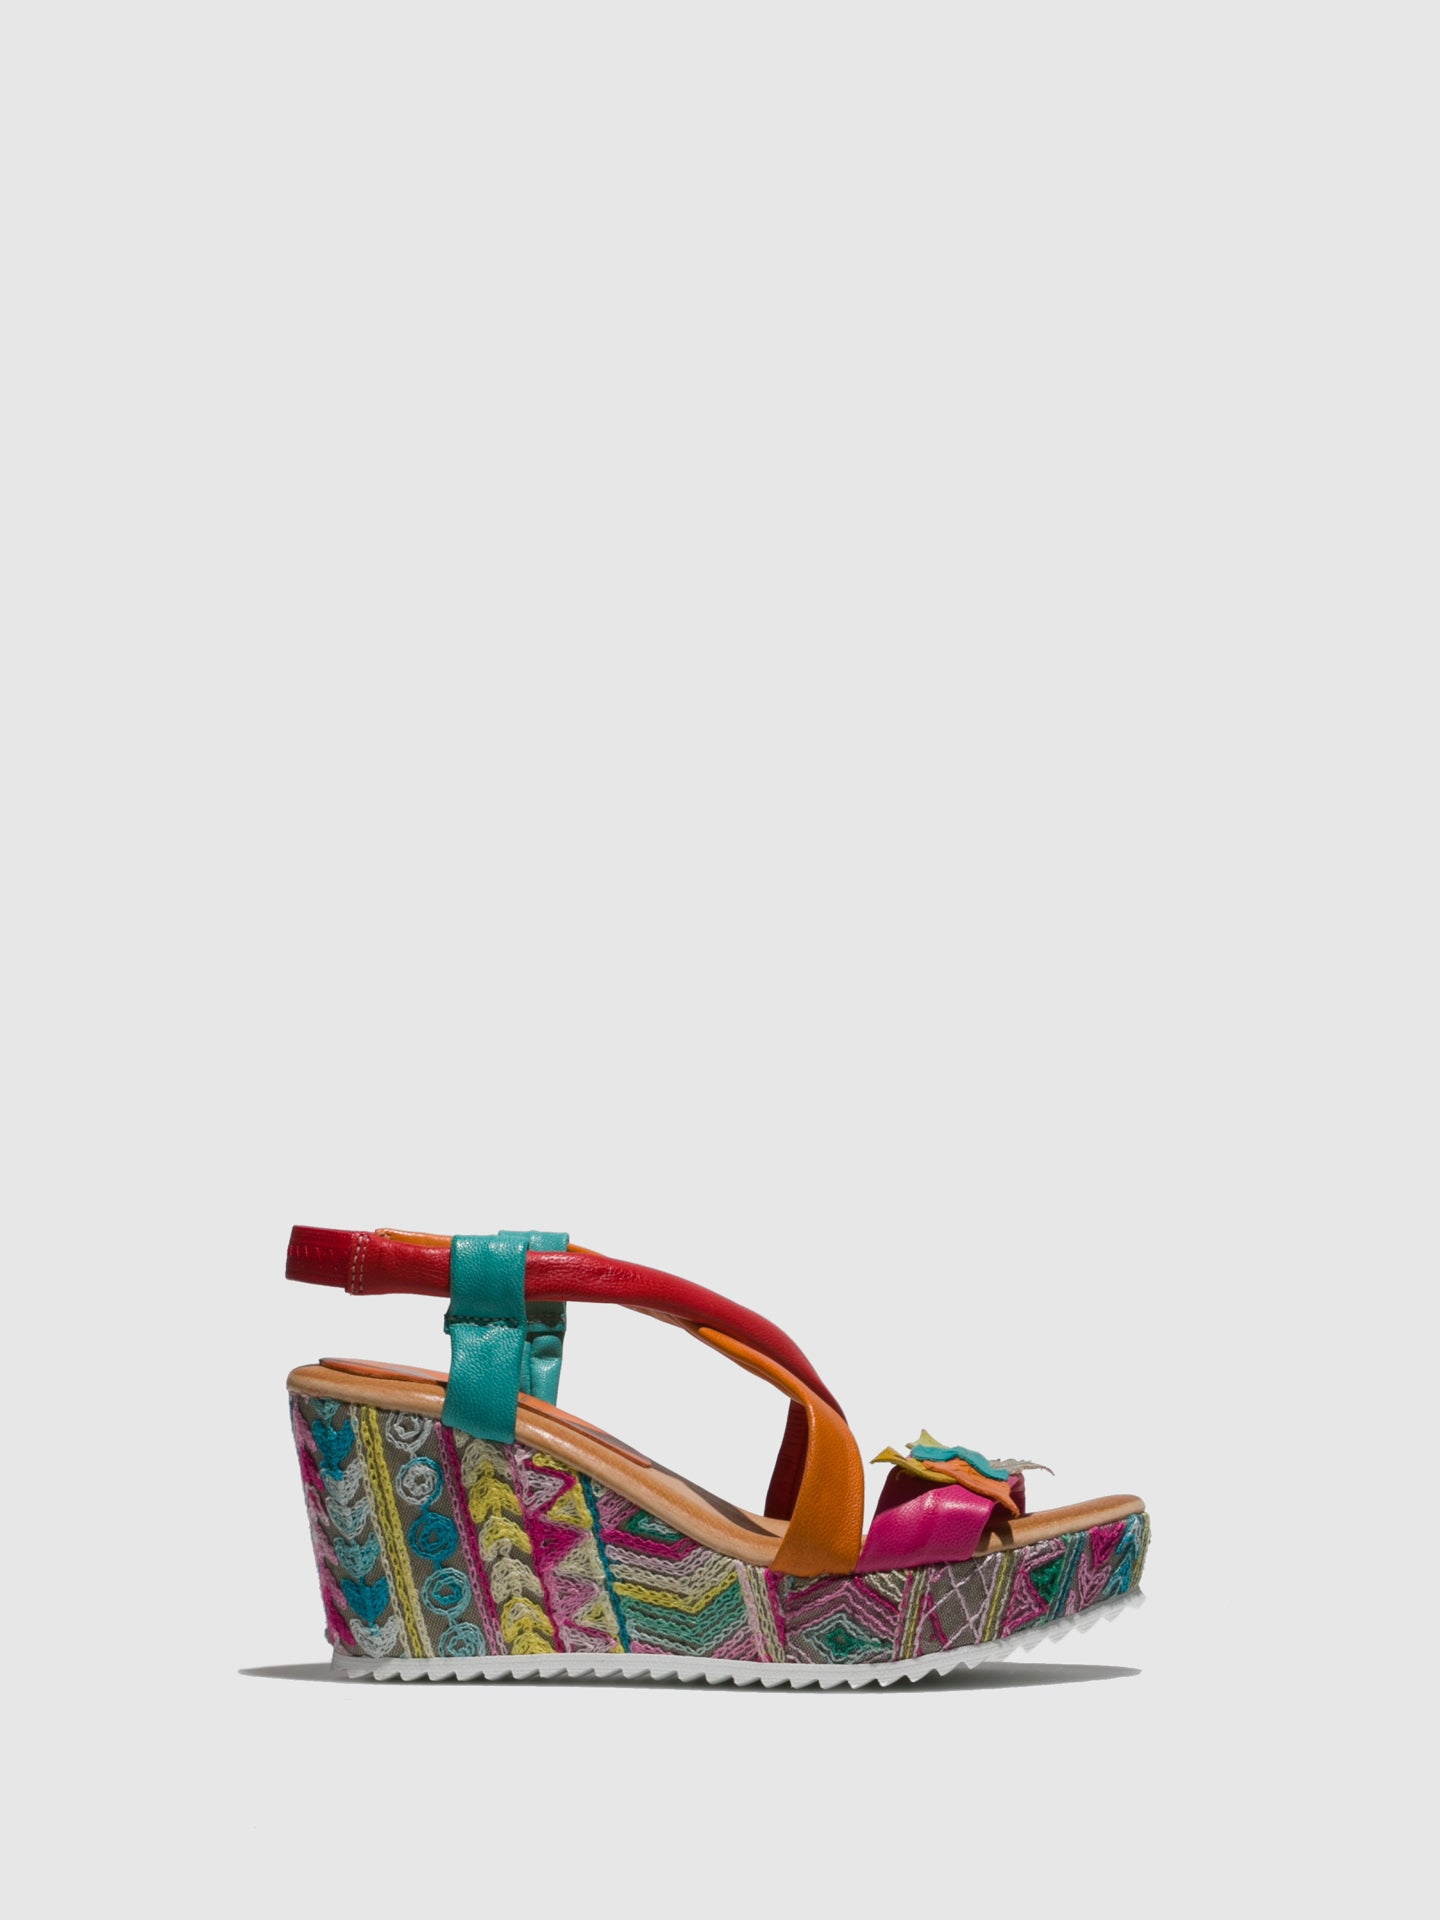 Marila Shoes Multicolor Wedge Sandals